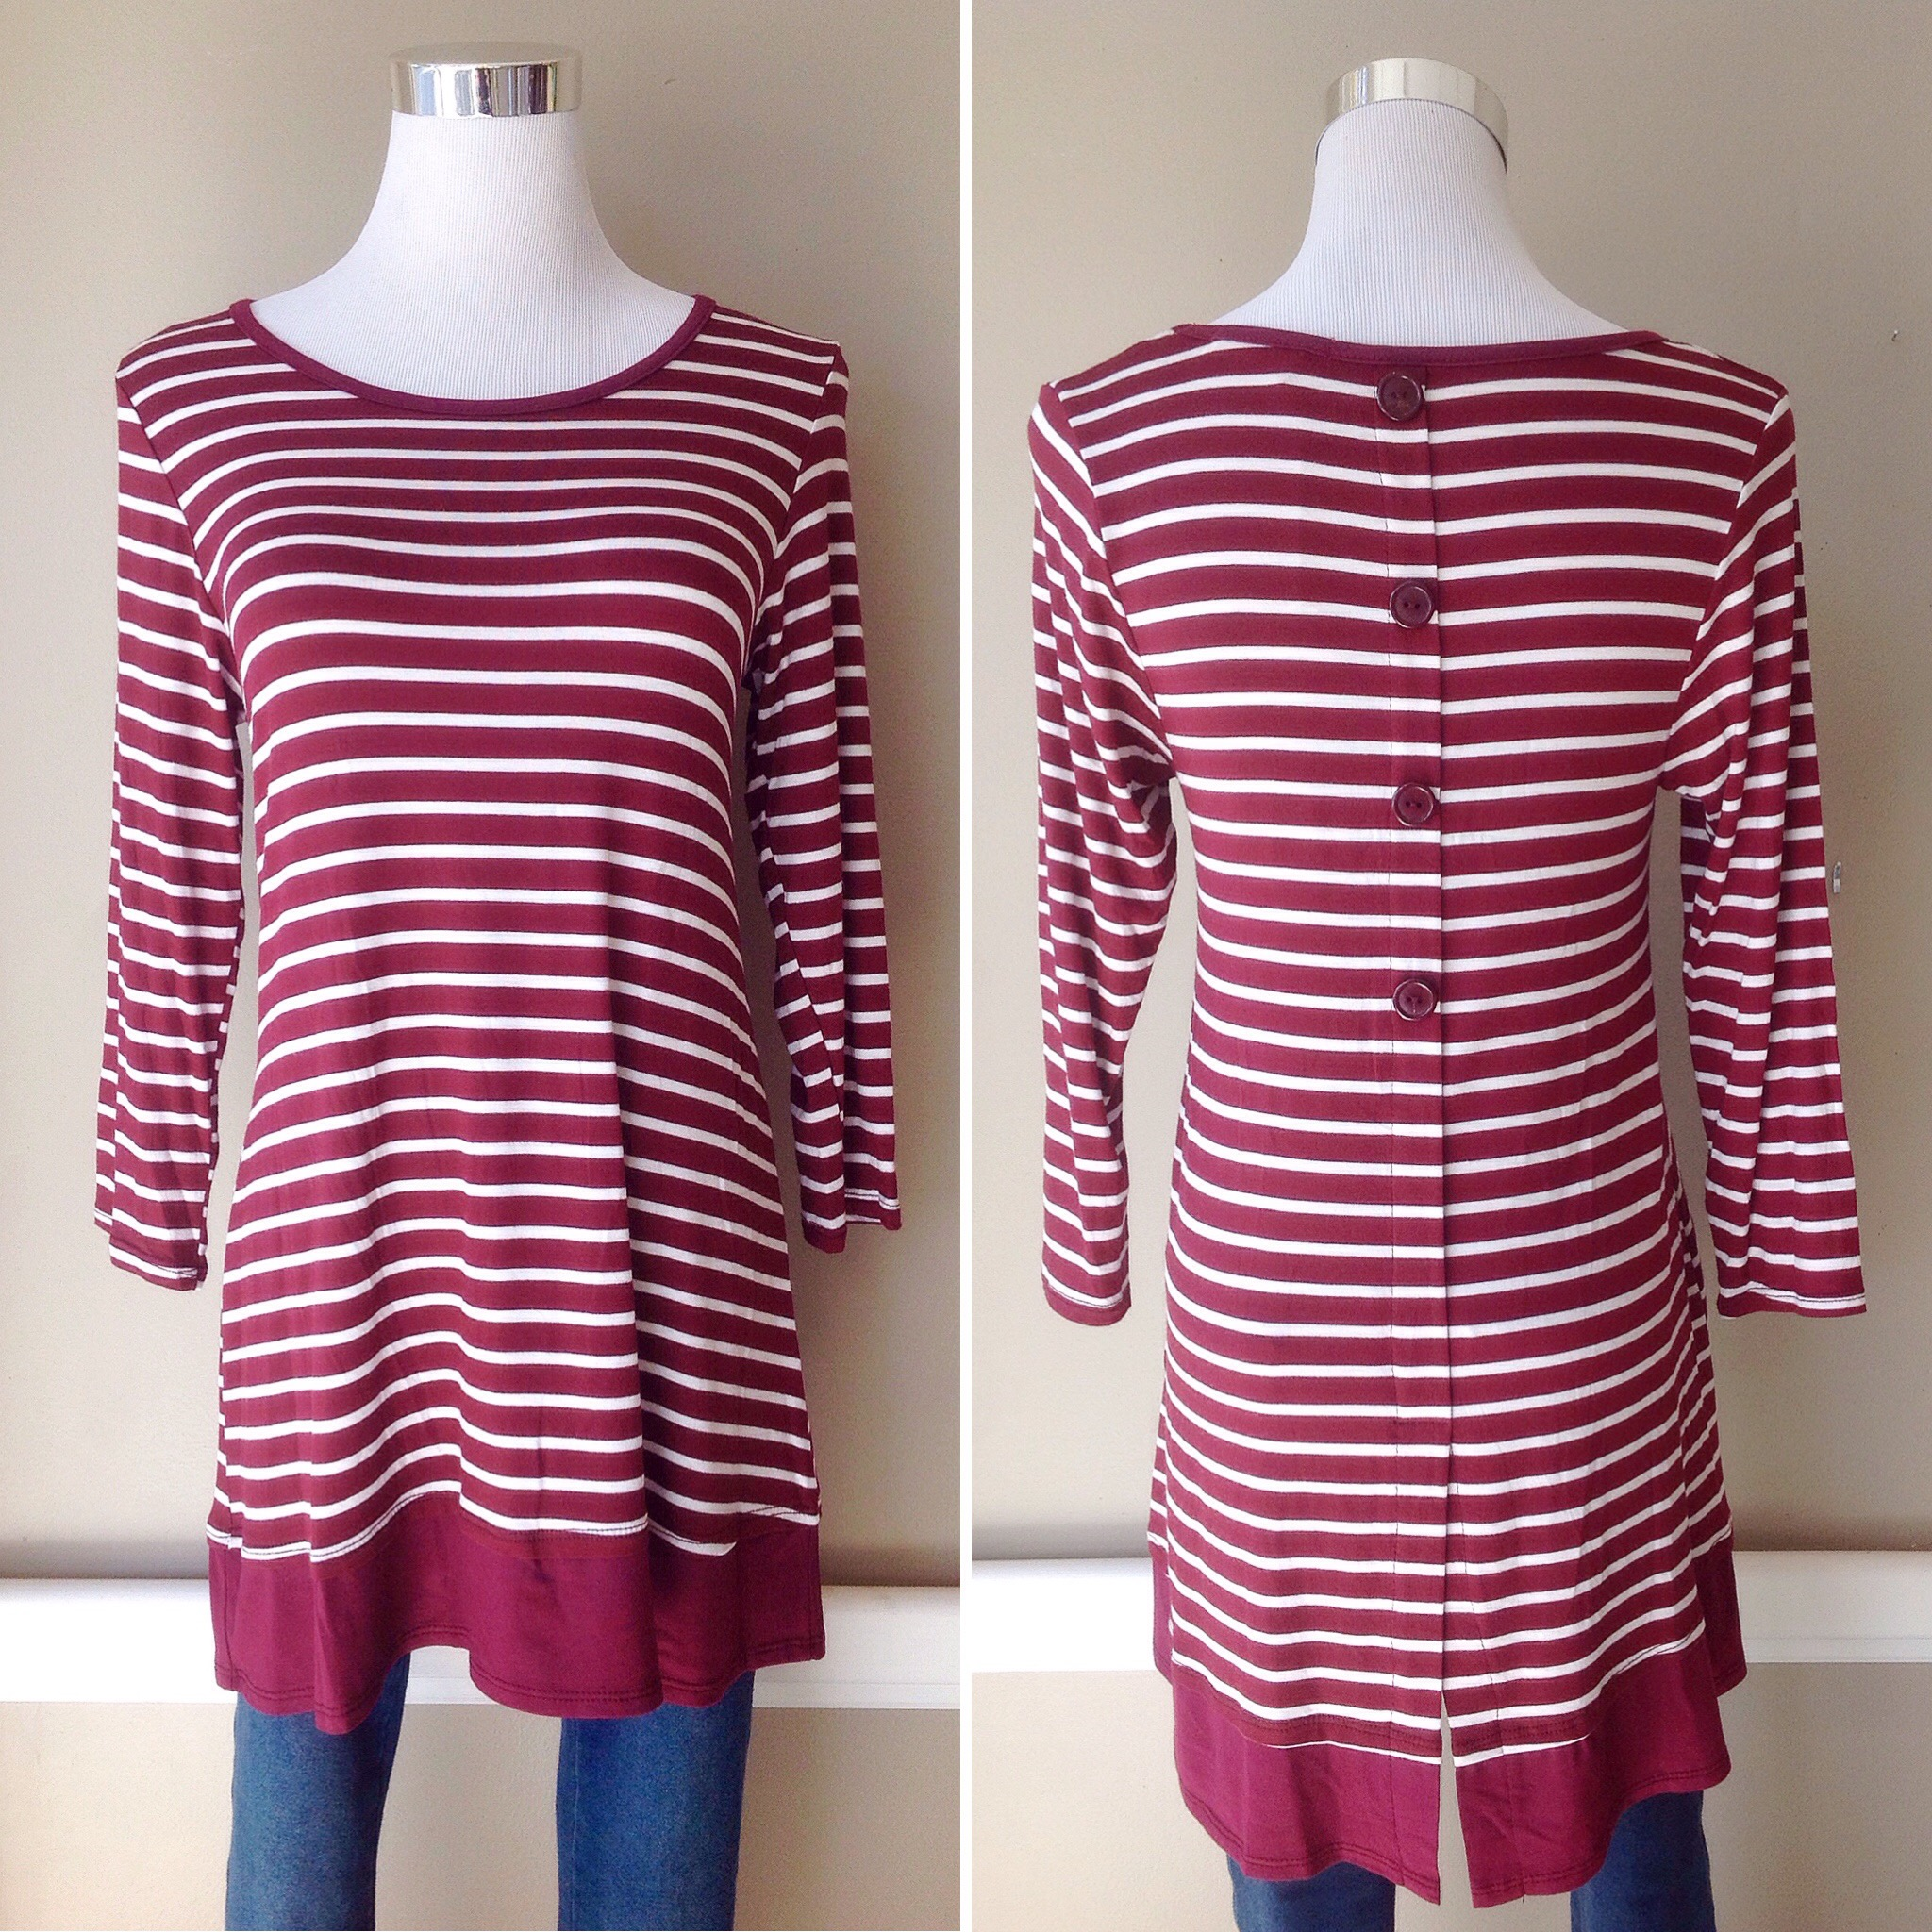 Burgundy stripe top with back buttons and tiered hem, $34